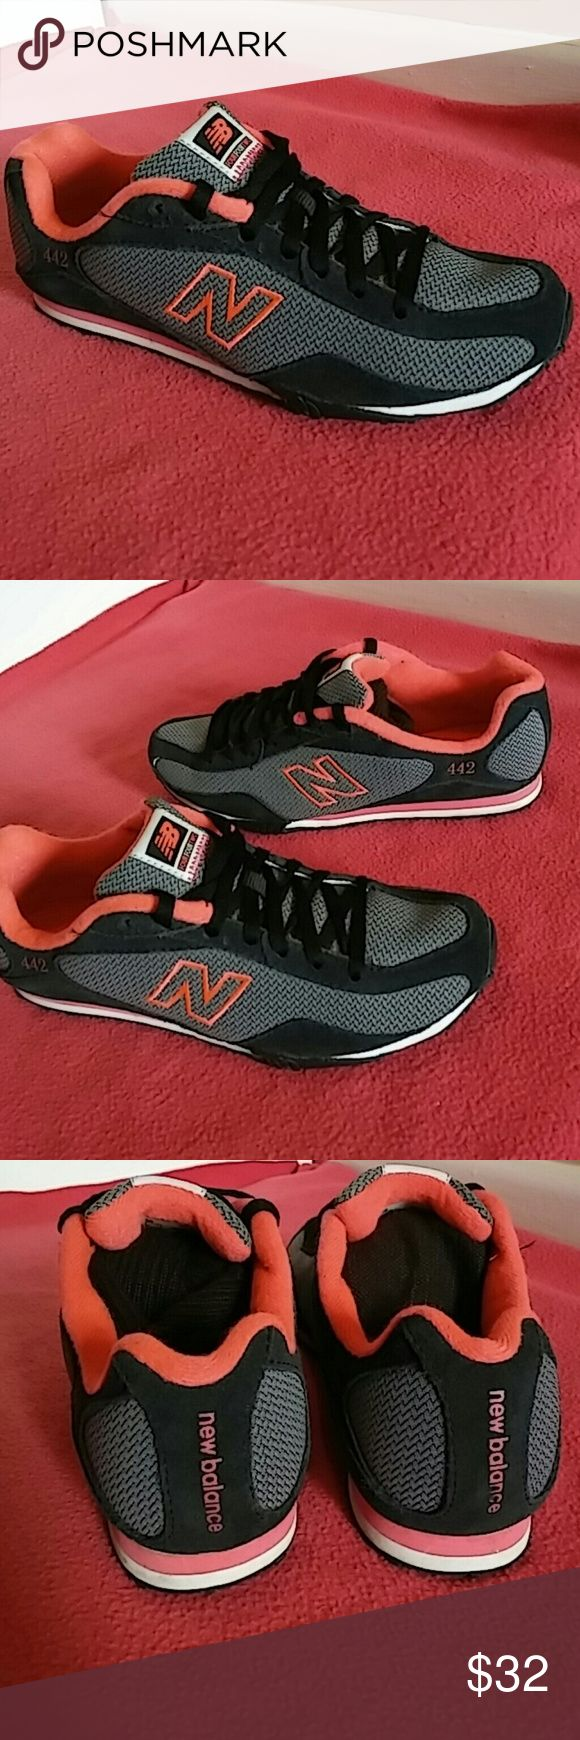 New Balance 442...WOMEN SIZE 7 Shoes shows minimal signs of use and rated 8.5/10. Very styled to reflect a lady's choice. This is 200% Authentic New Balance. NB Shoes Sneakers